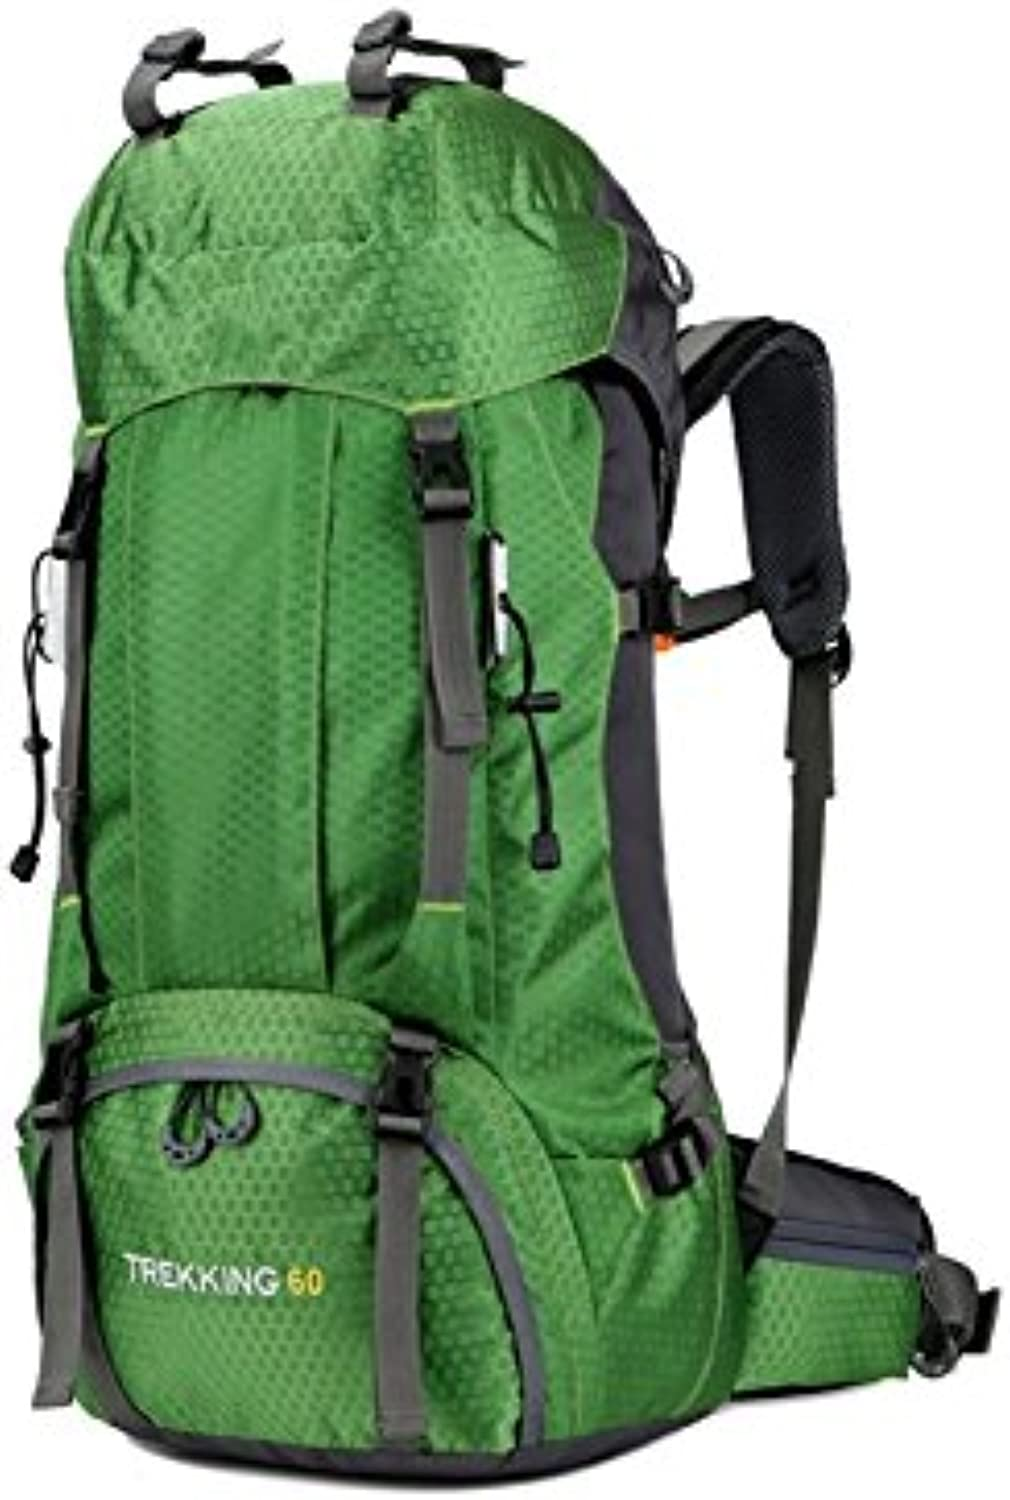 Backpacks Large Capacity Mountaineering Bag 60L Waterproof Outdoor Travel Backpack with Rain Cover(Green) Vellhater